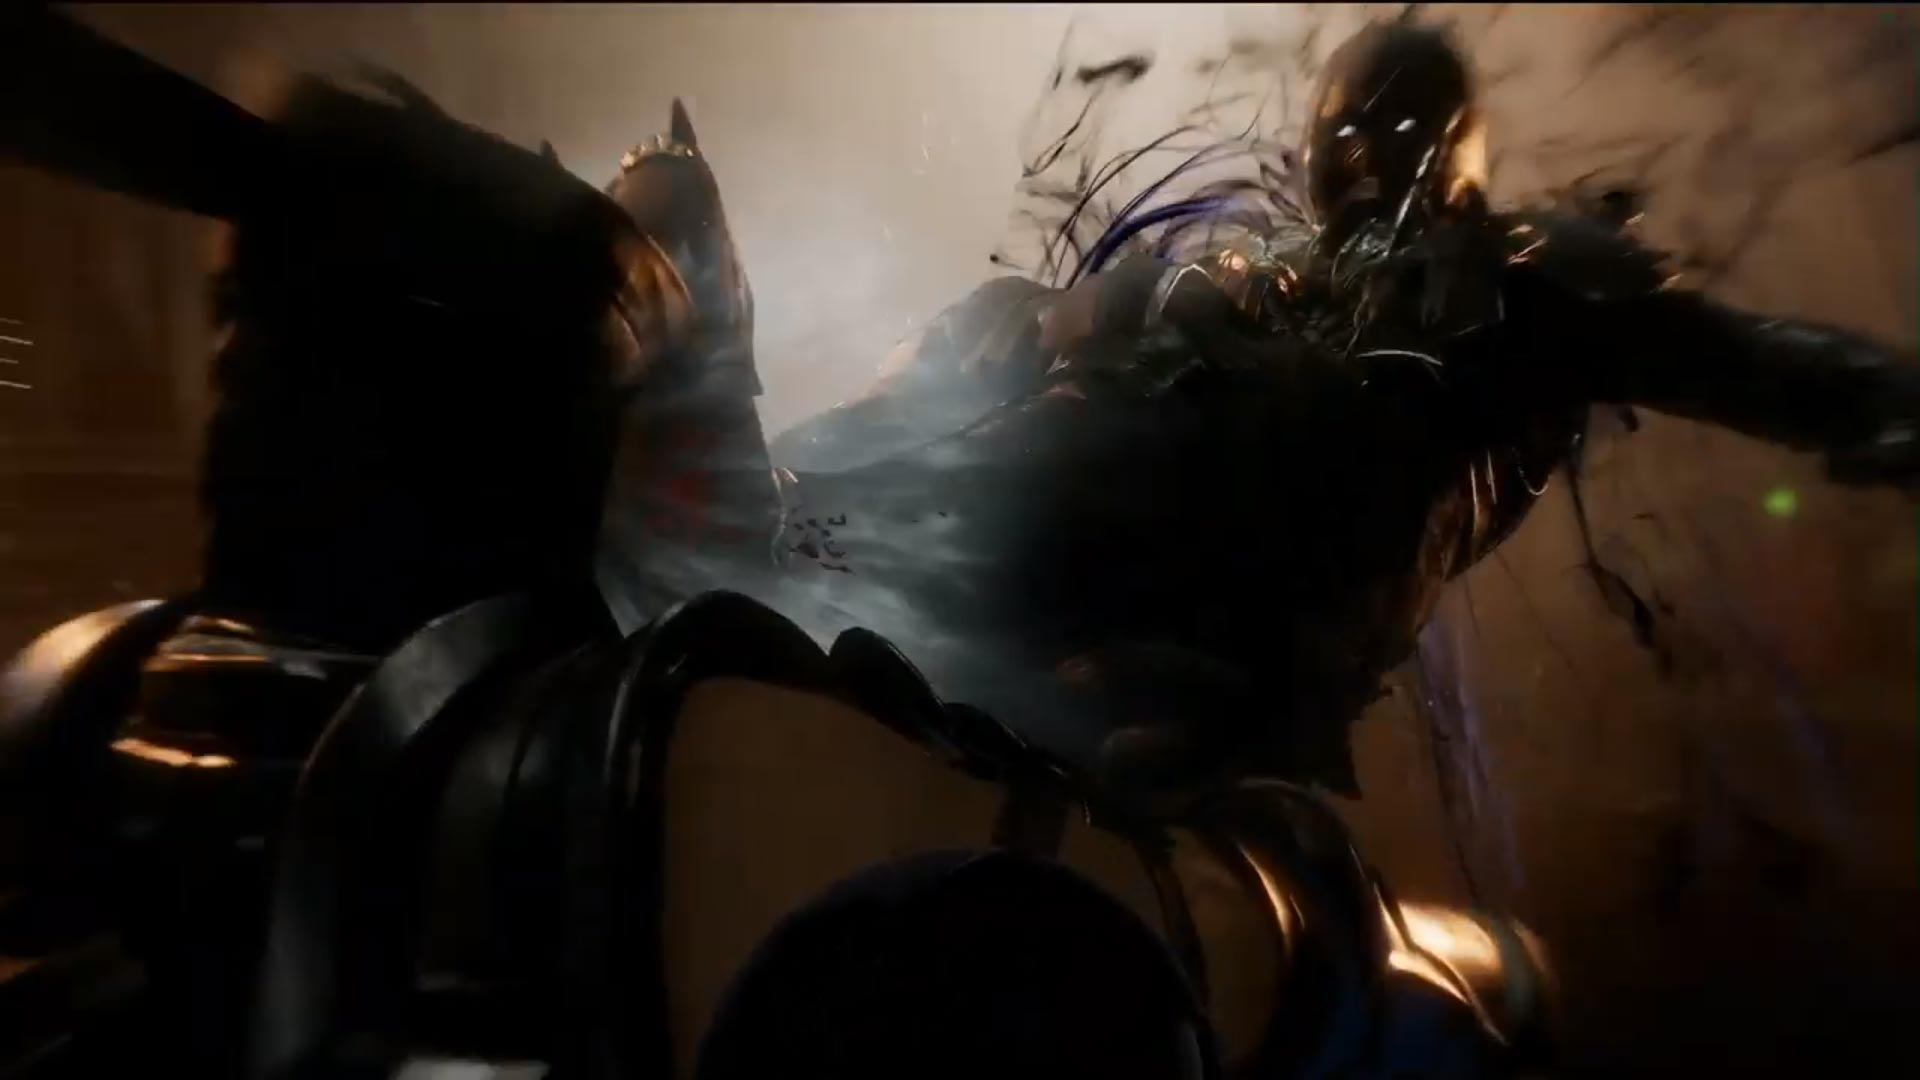 Noob Saibot character artwork in Mortal Kombat 11 5 out of 7 image gallery